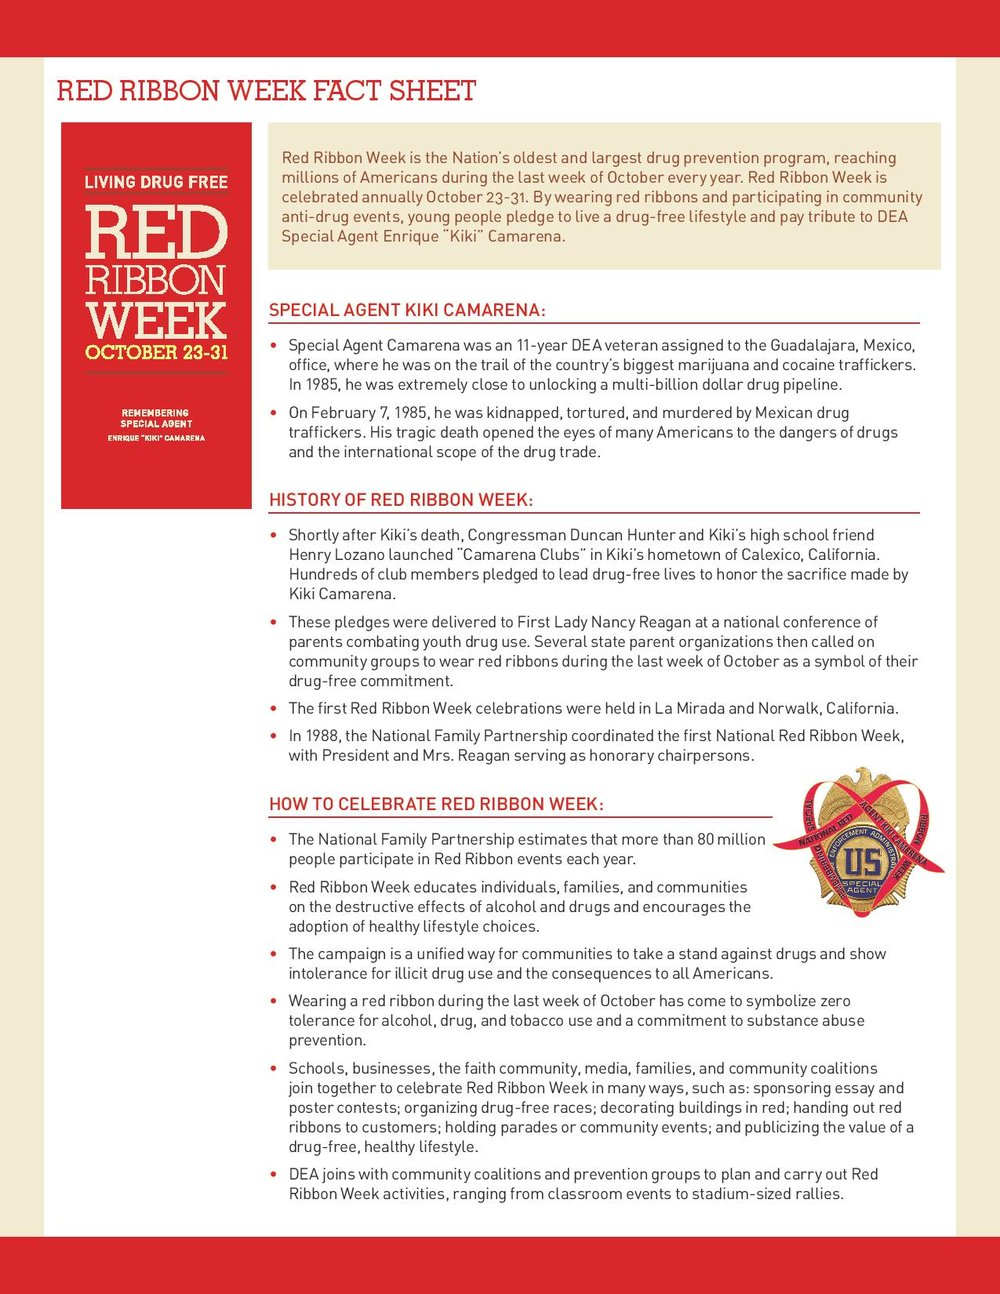 Red-Ribbon-Fact-Sheet-page-001.jpg